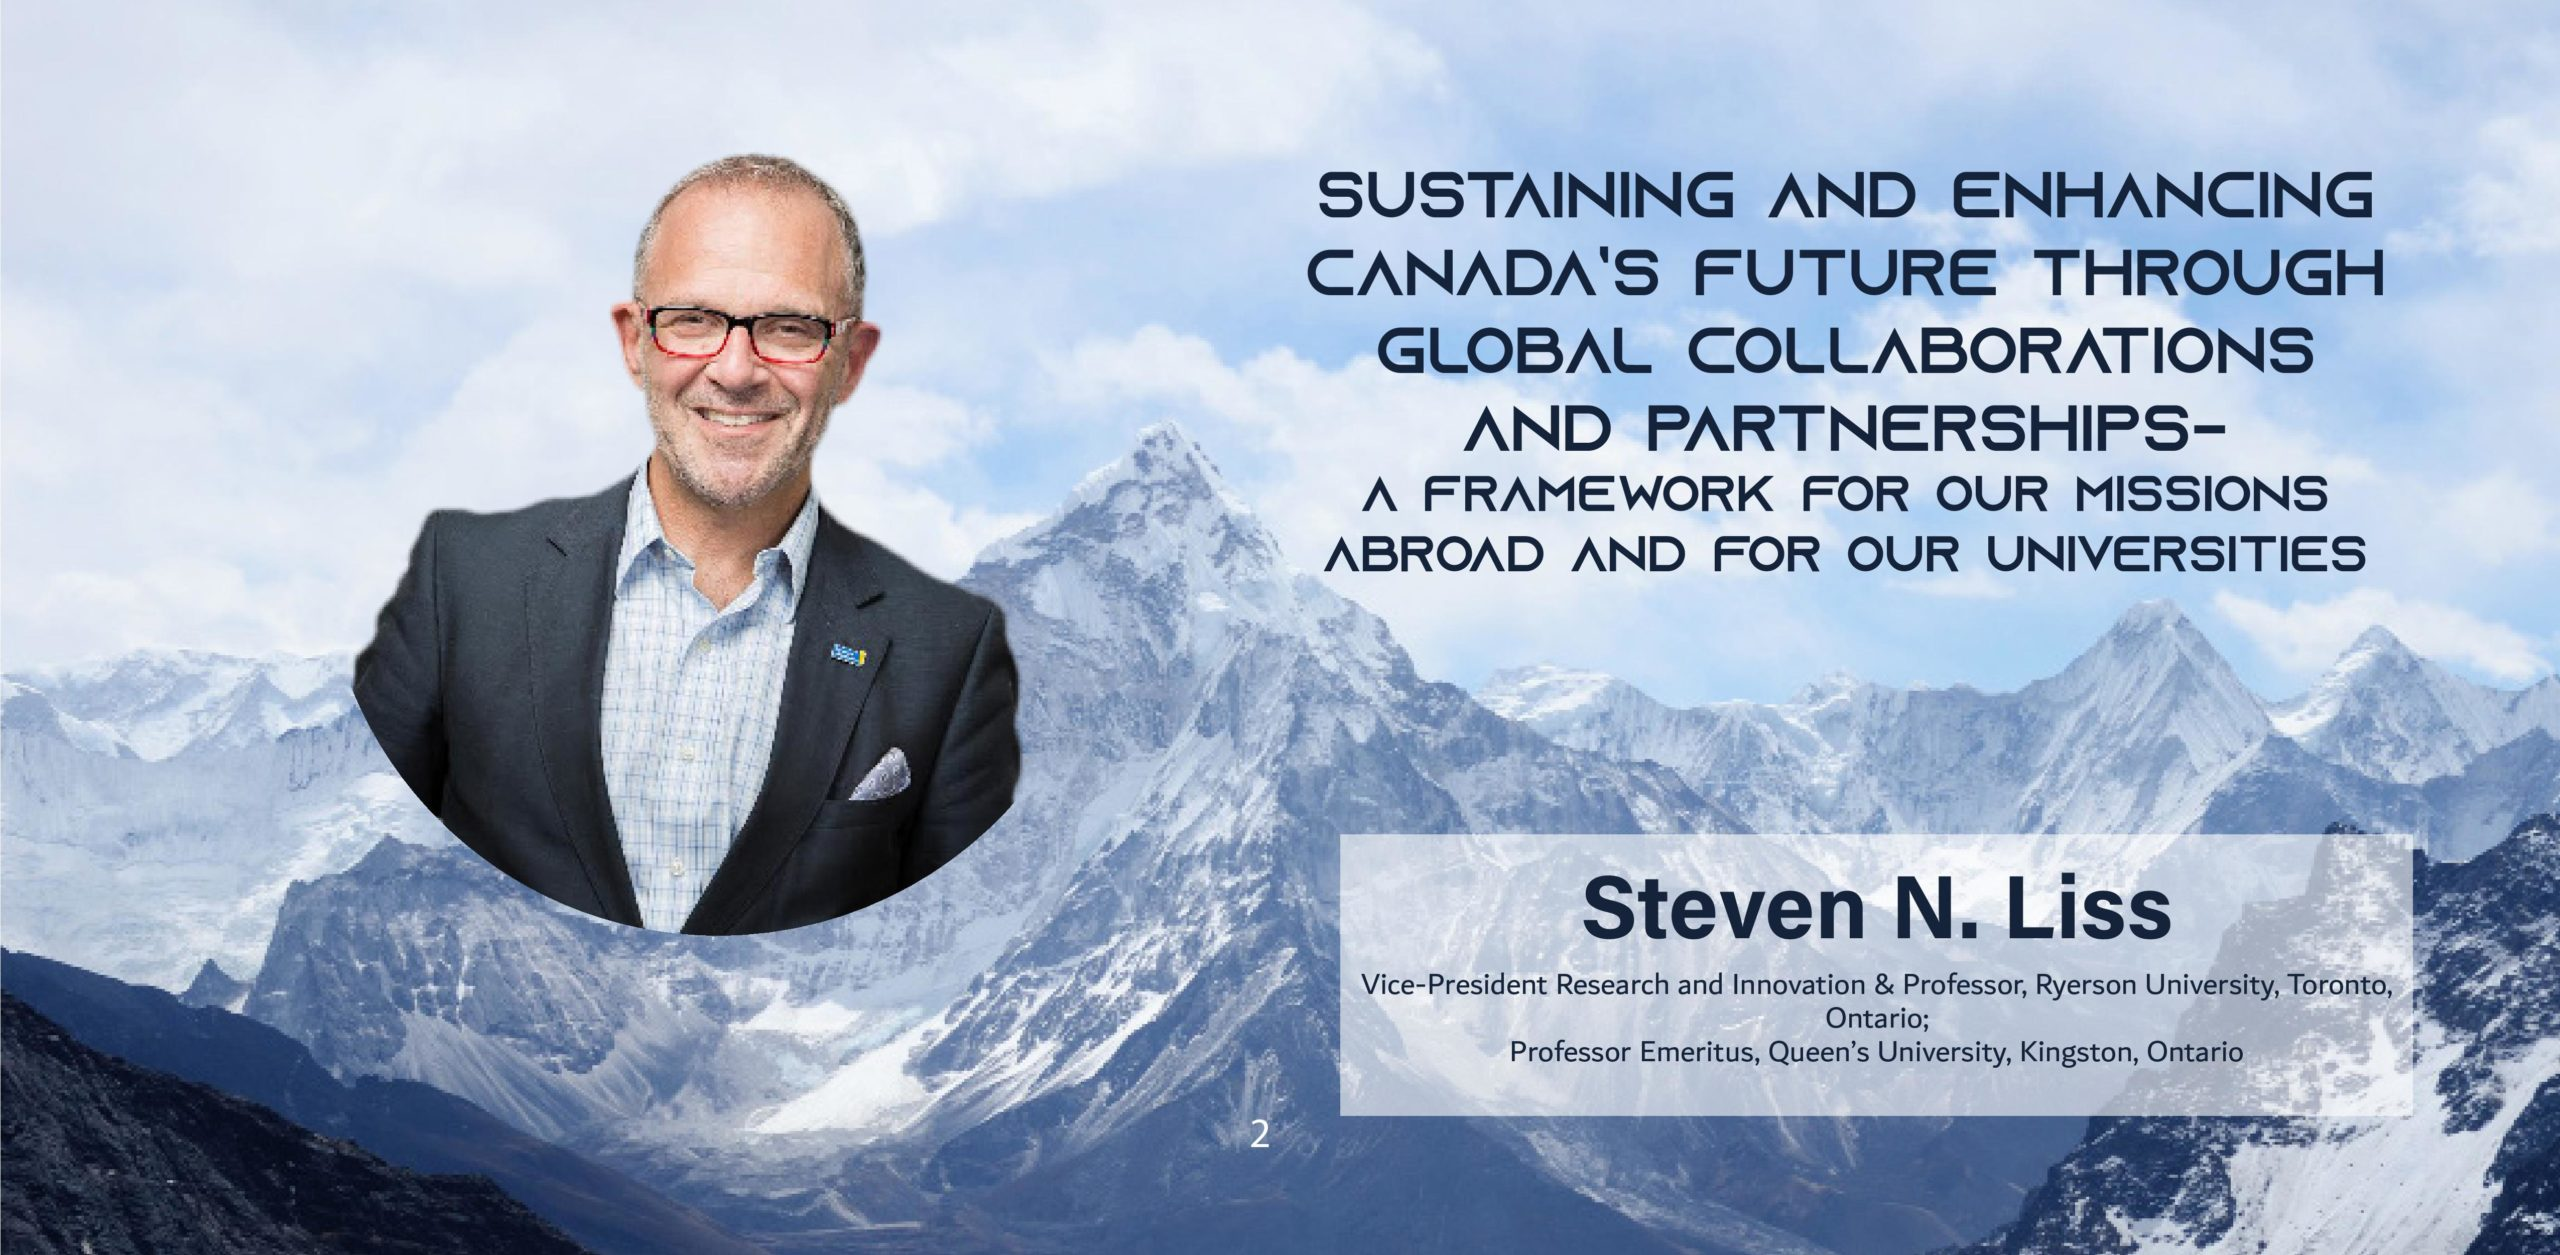 A picture of a man over a snowy mountainscape with the text: Sustaining and Enhancing Canada's Future through Global Collaborations and Partnerships-A Framework for our Missions Abroad and for our Universities Steven N Liss Ryerson University, Toronto, Ontario Vice-President Research and Innovation & Professor Queen's University, Kingston, Ontario Professor Emeritus